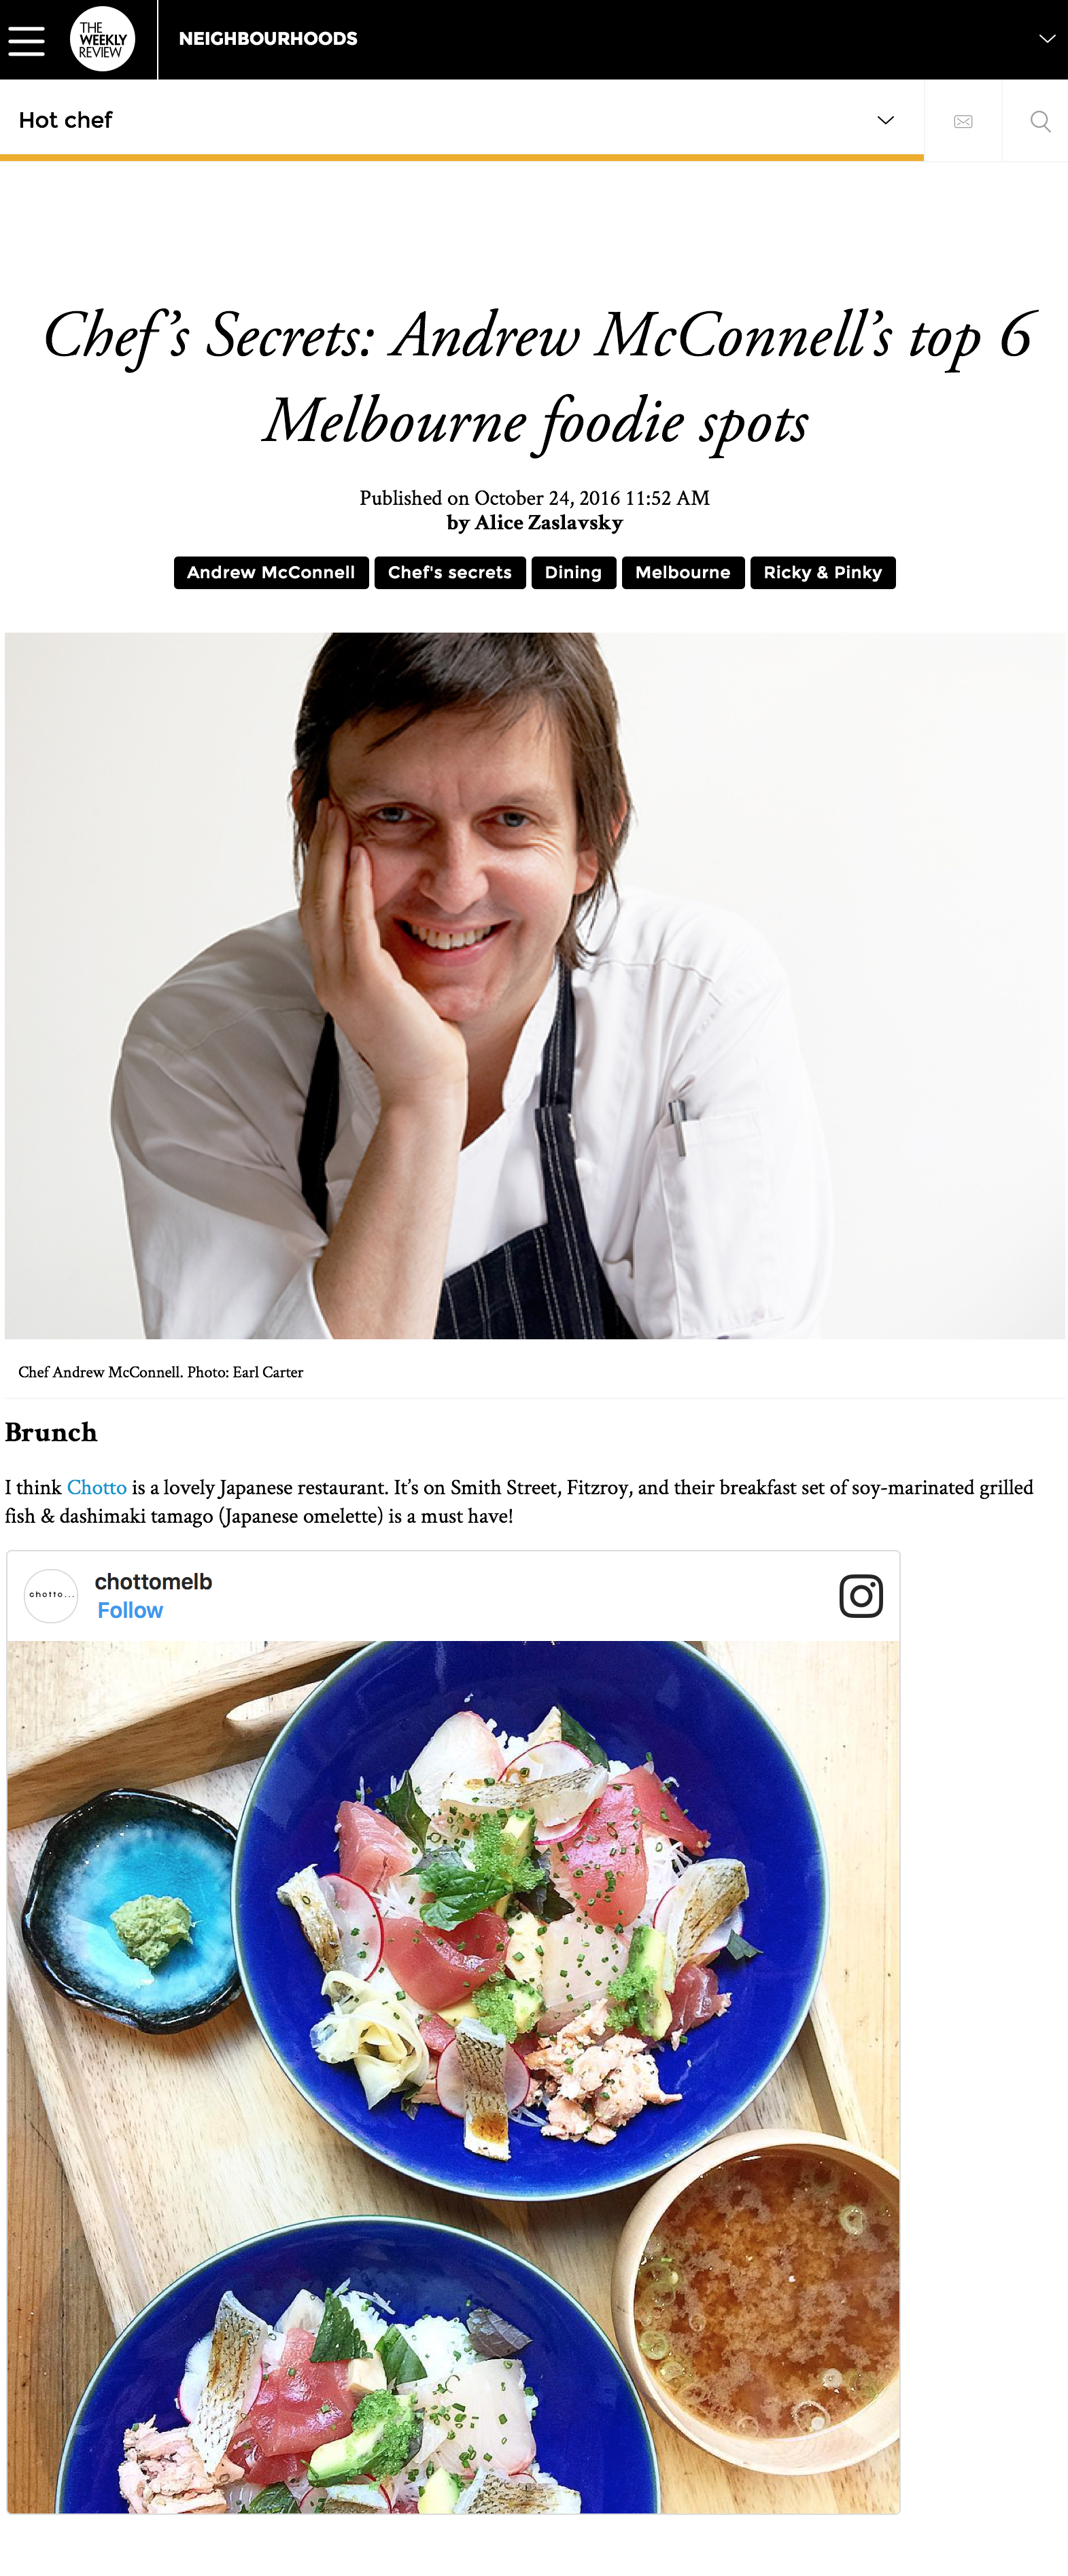 Chef's Secrets: Andrew McConnell's Top 6 Foodie Spots [The Weekly Review]